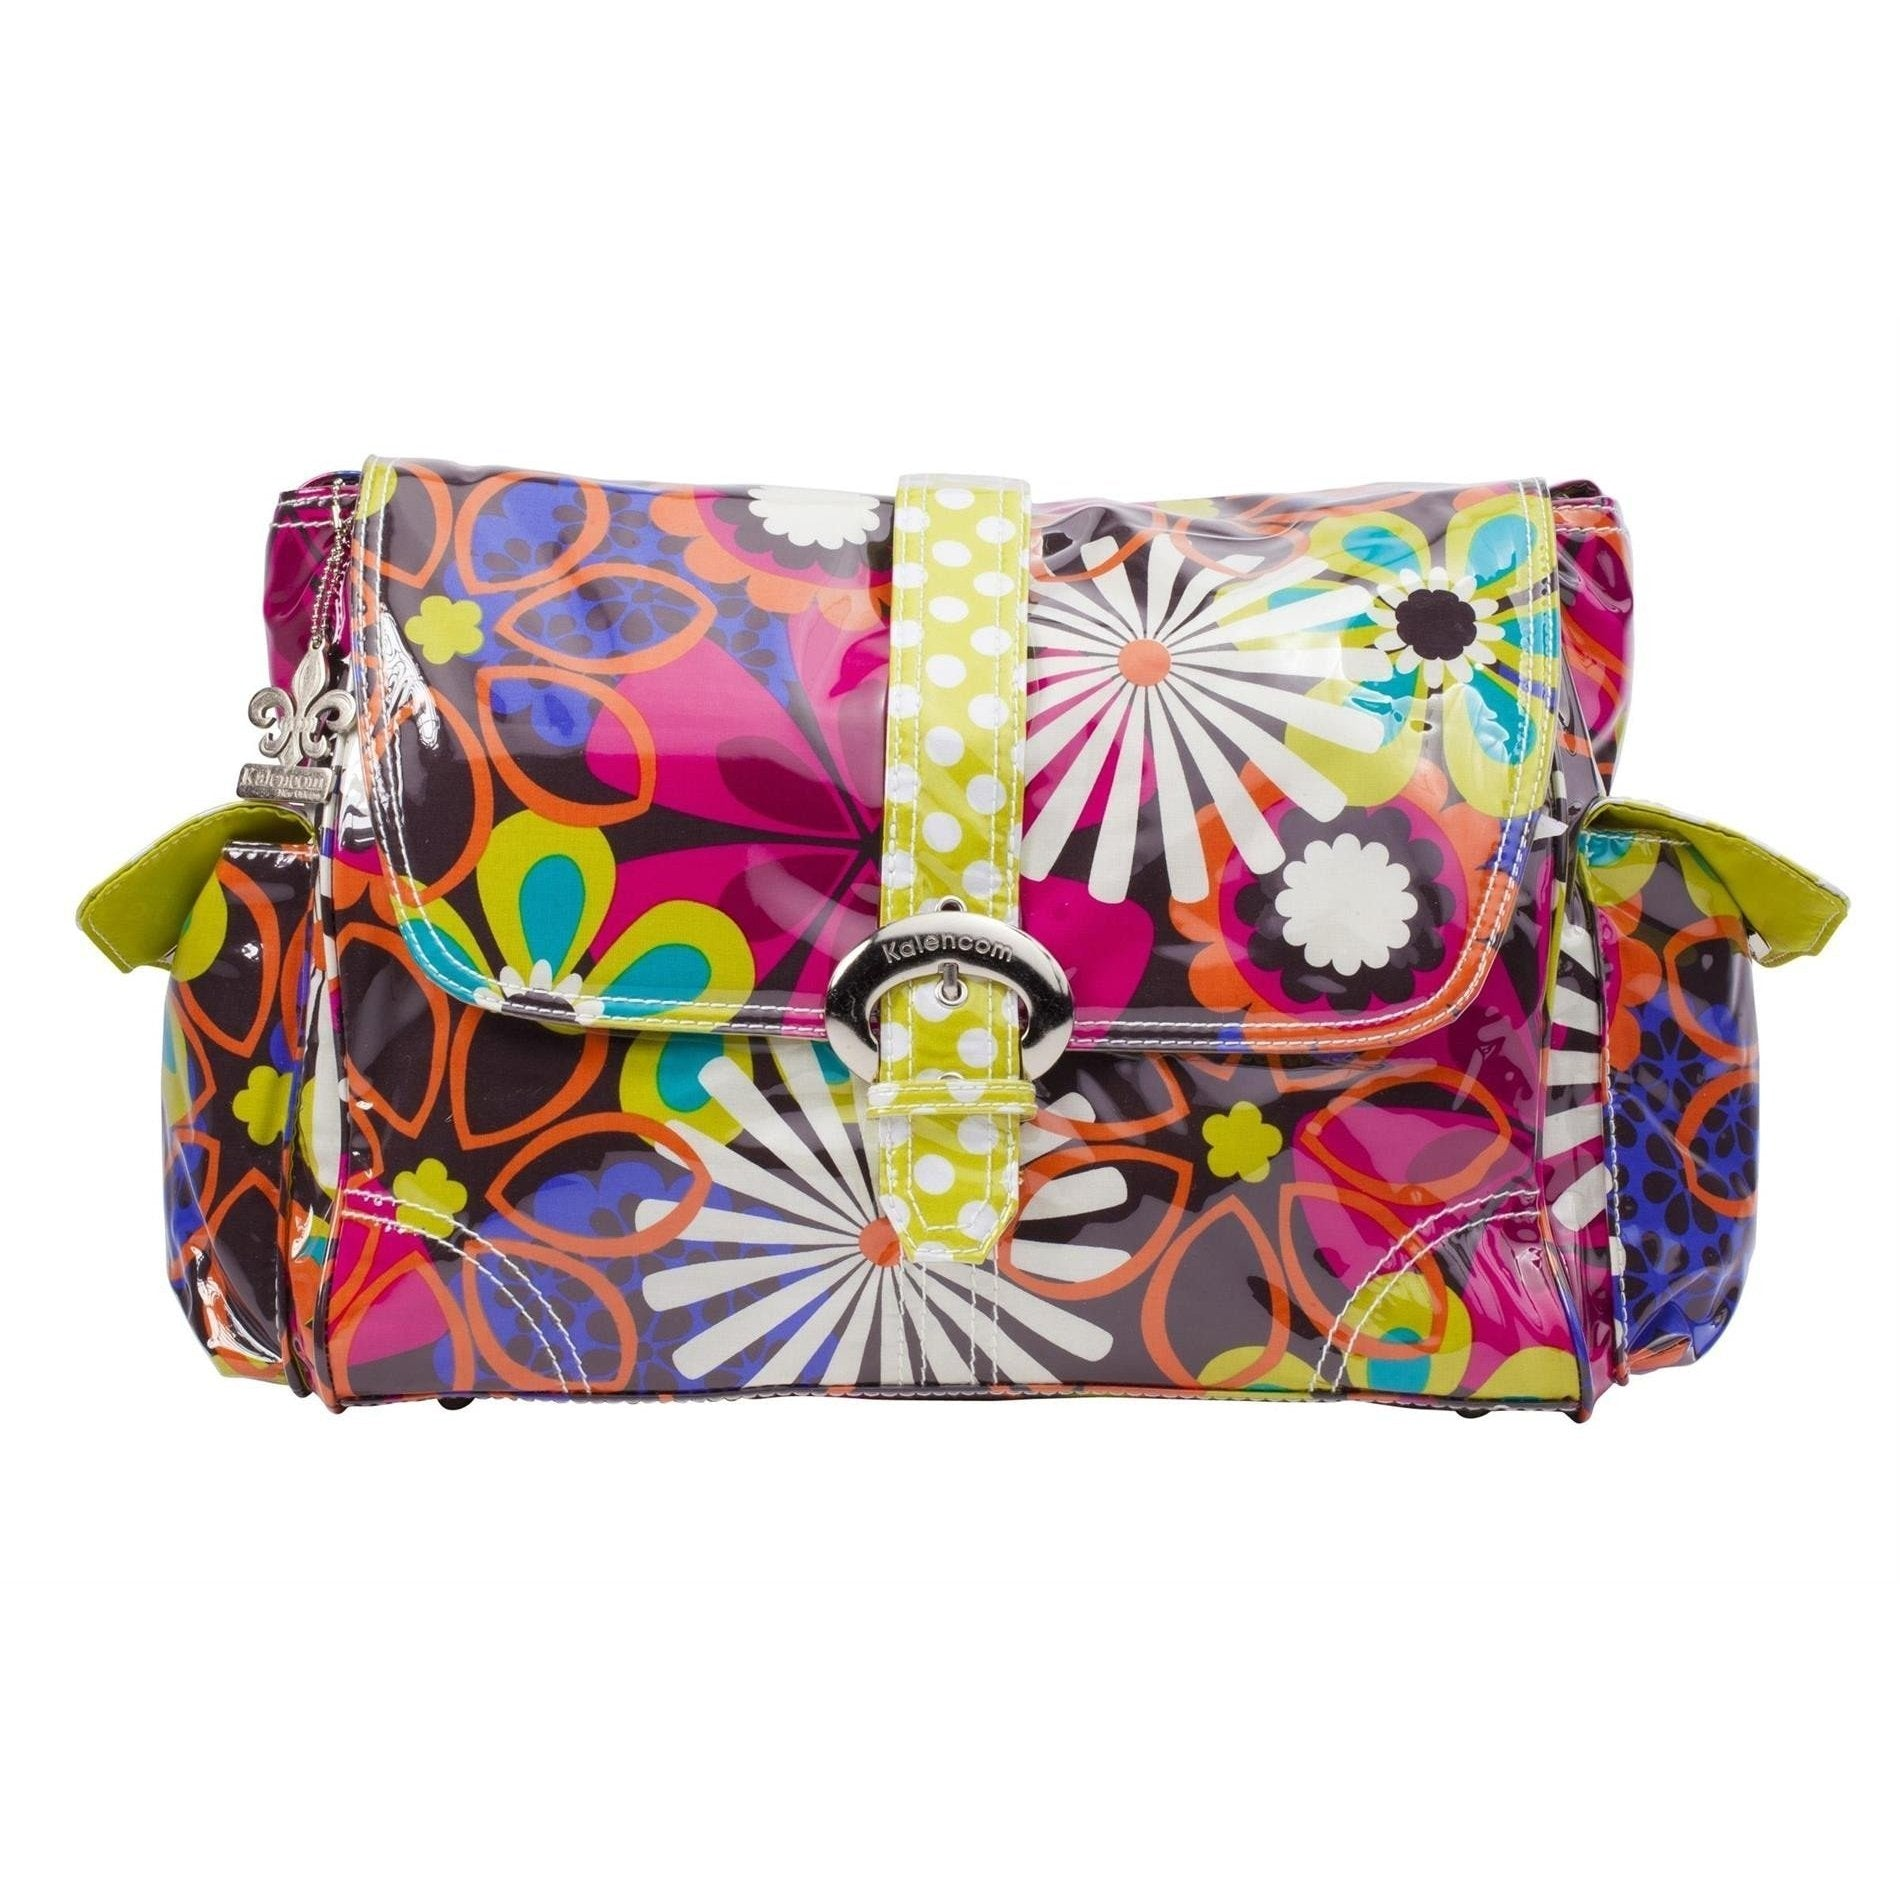 Spize Girls Laminated Buckle Diaper Bag | Style 2960 - Kalencom-Diaper Bags-Default-Jack and Jill Boutique